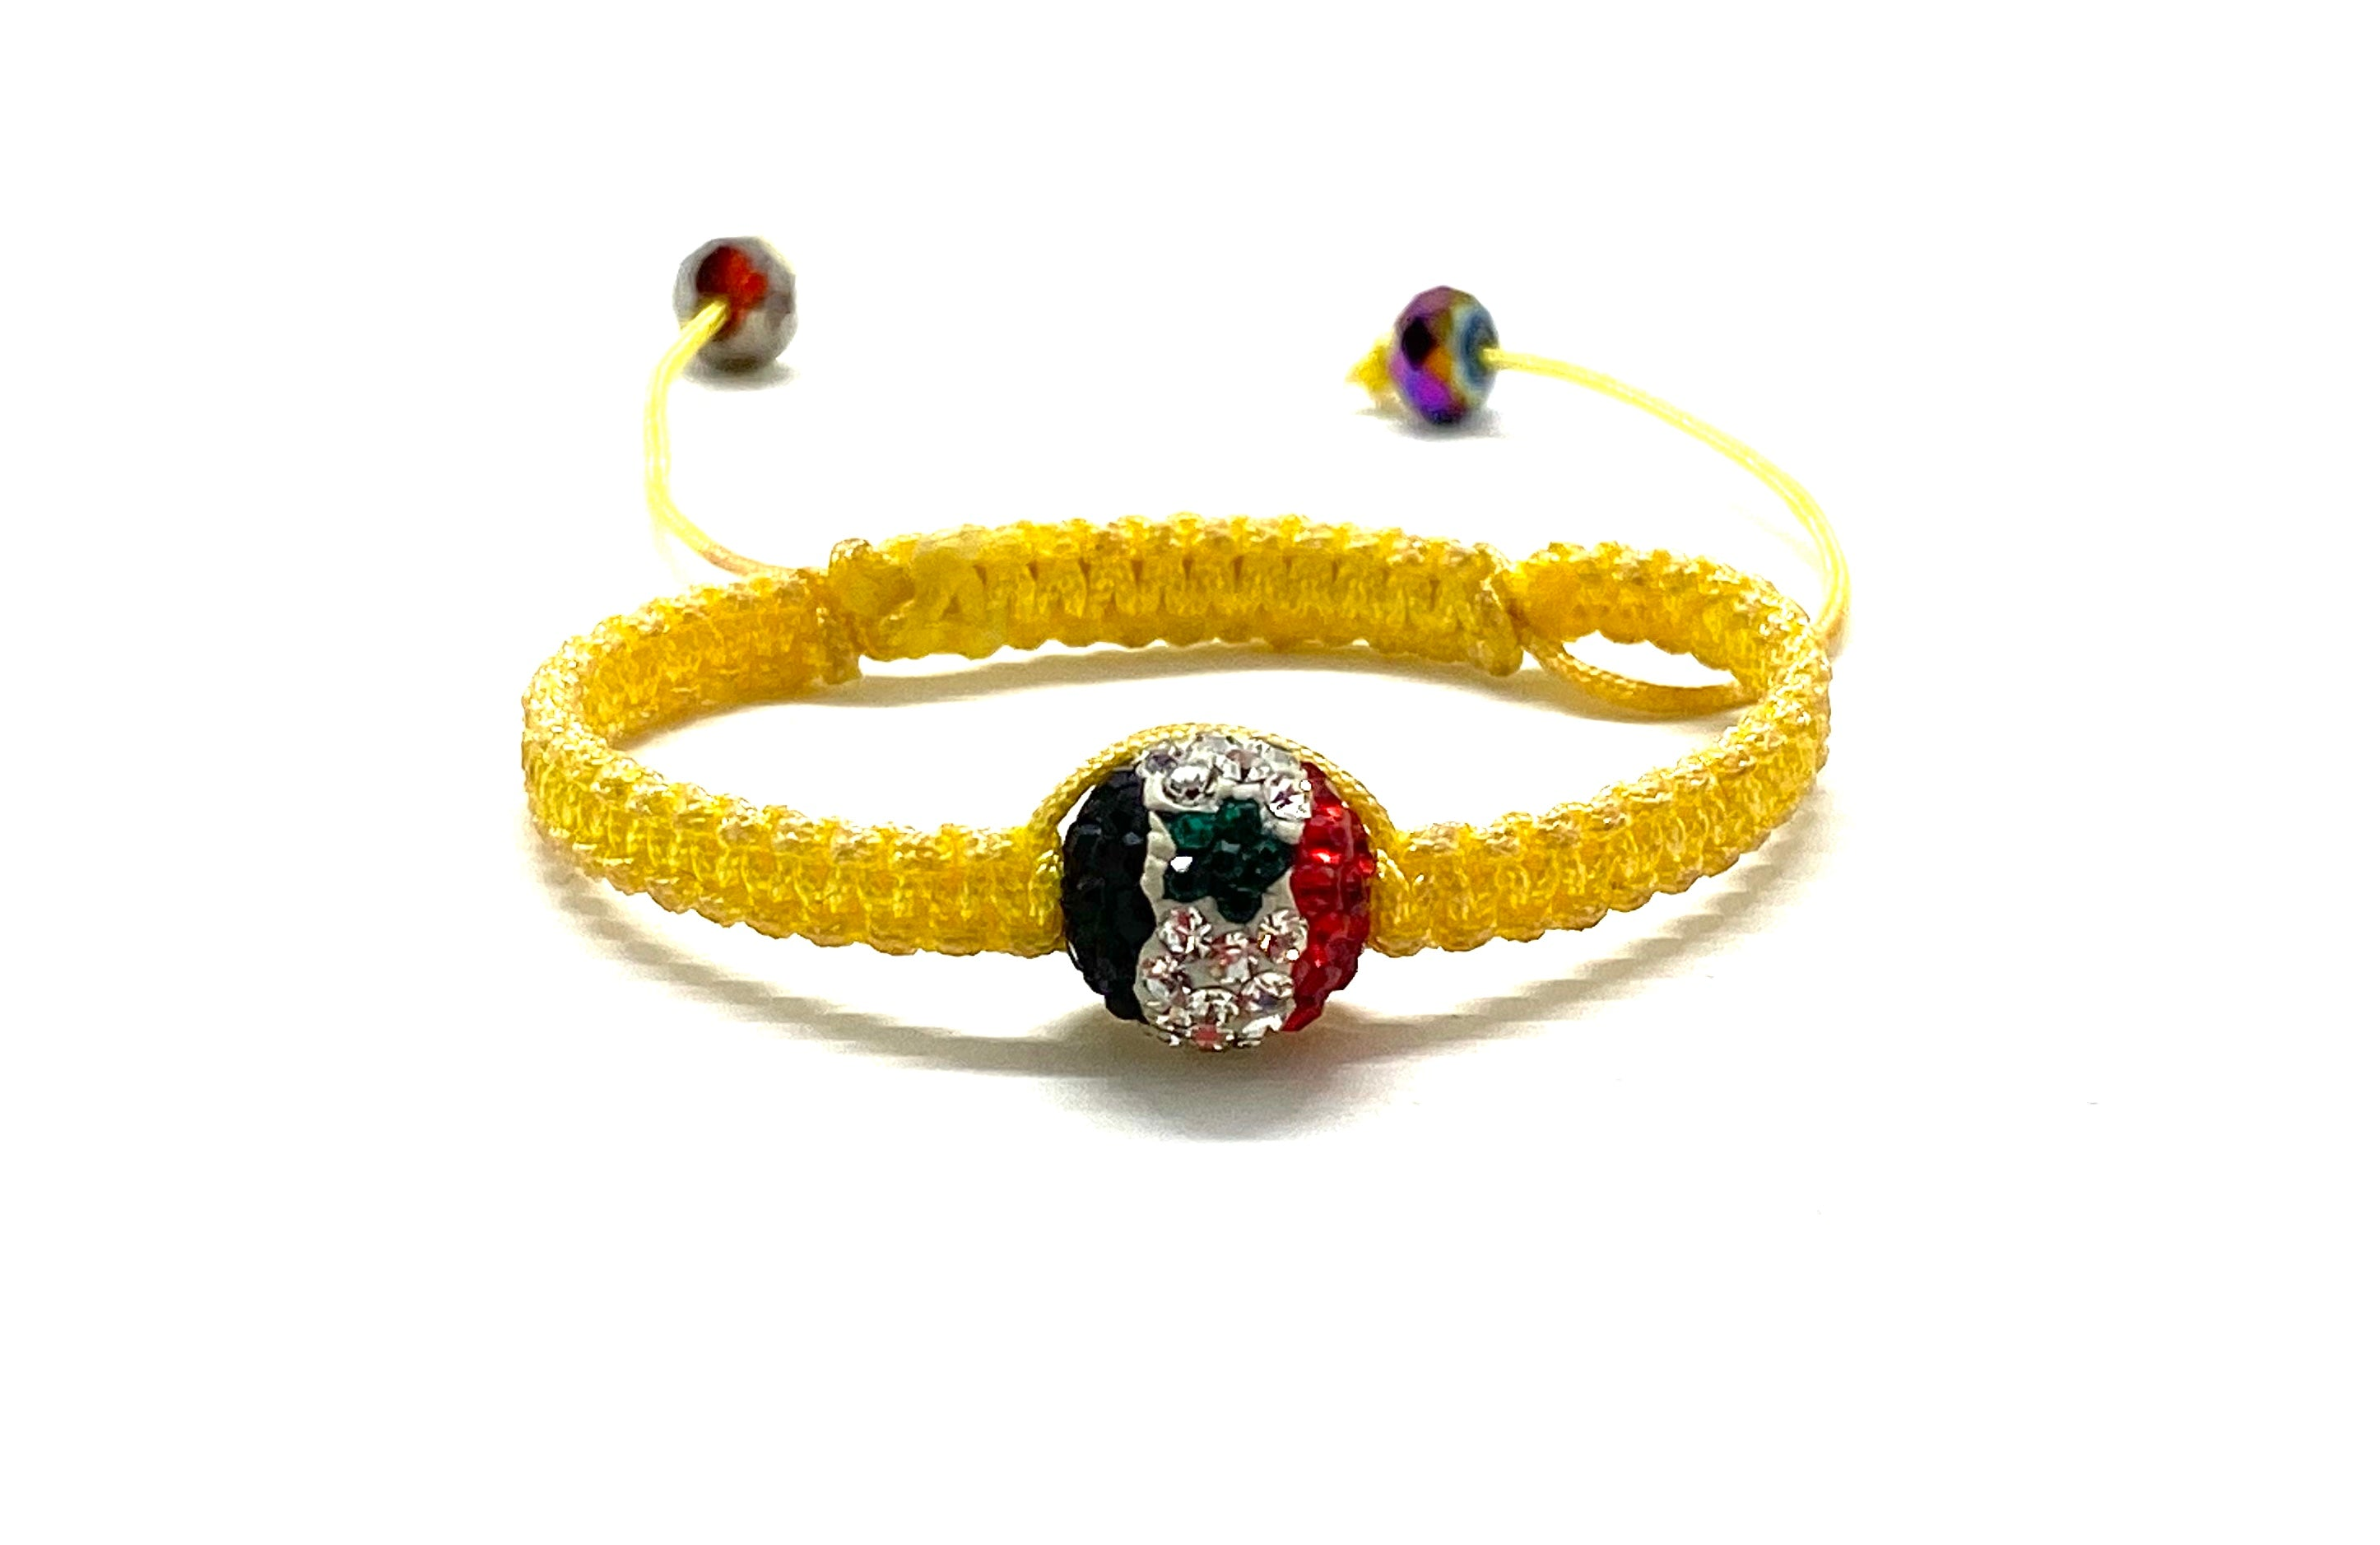 Baby Syrian flag crystal bead bracelet, yellow braided cord